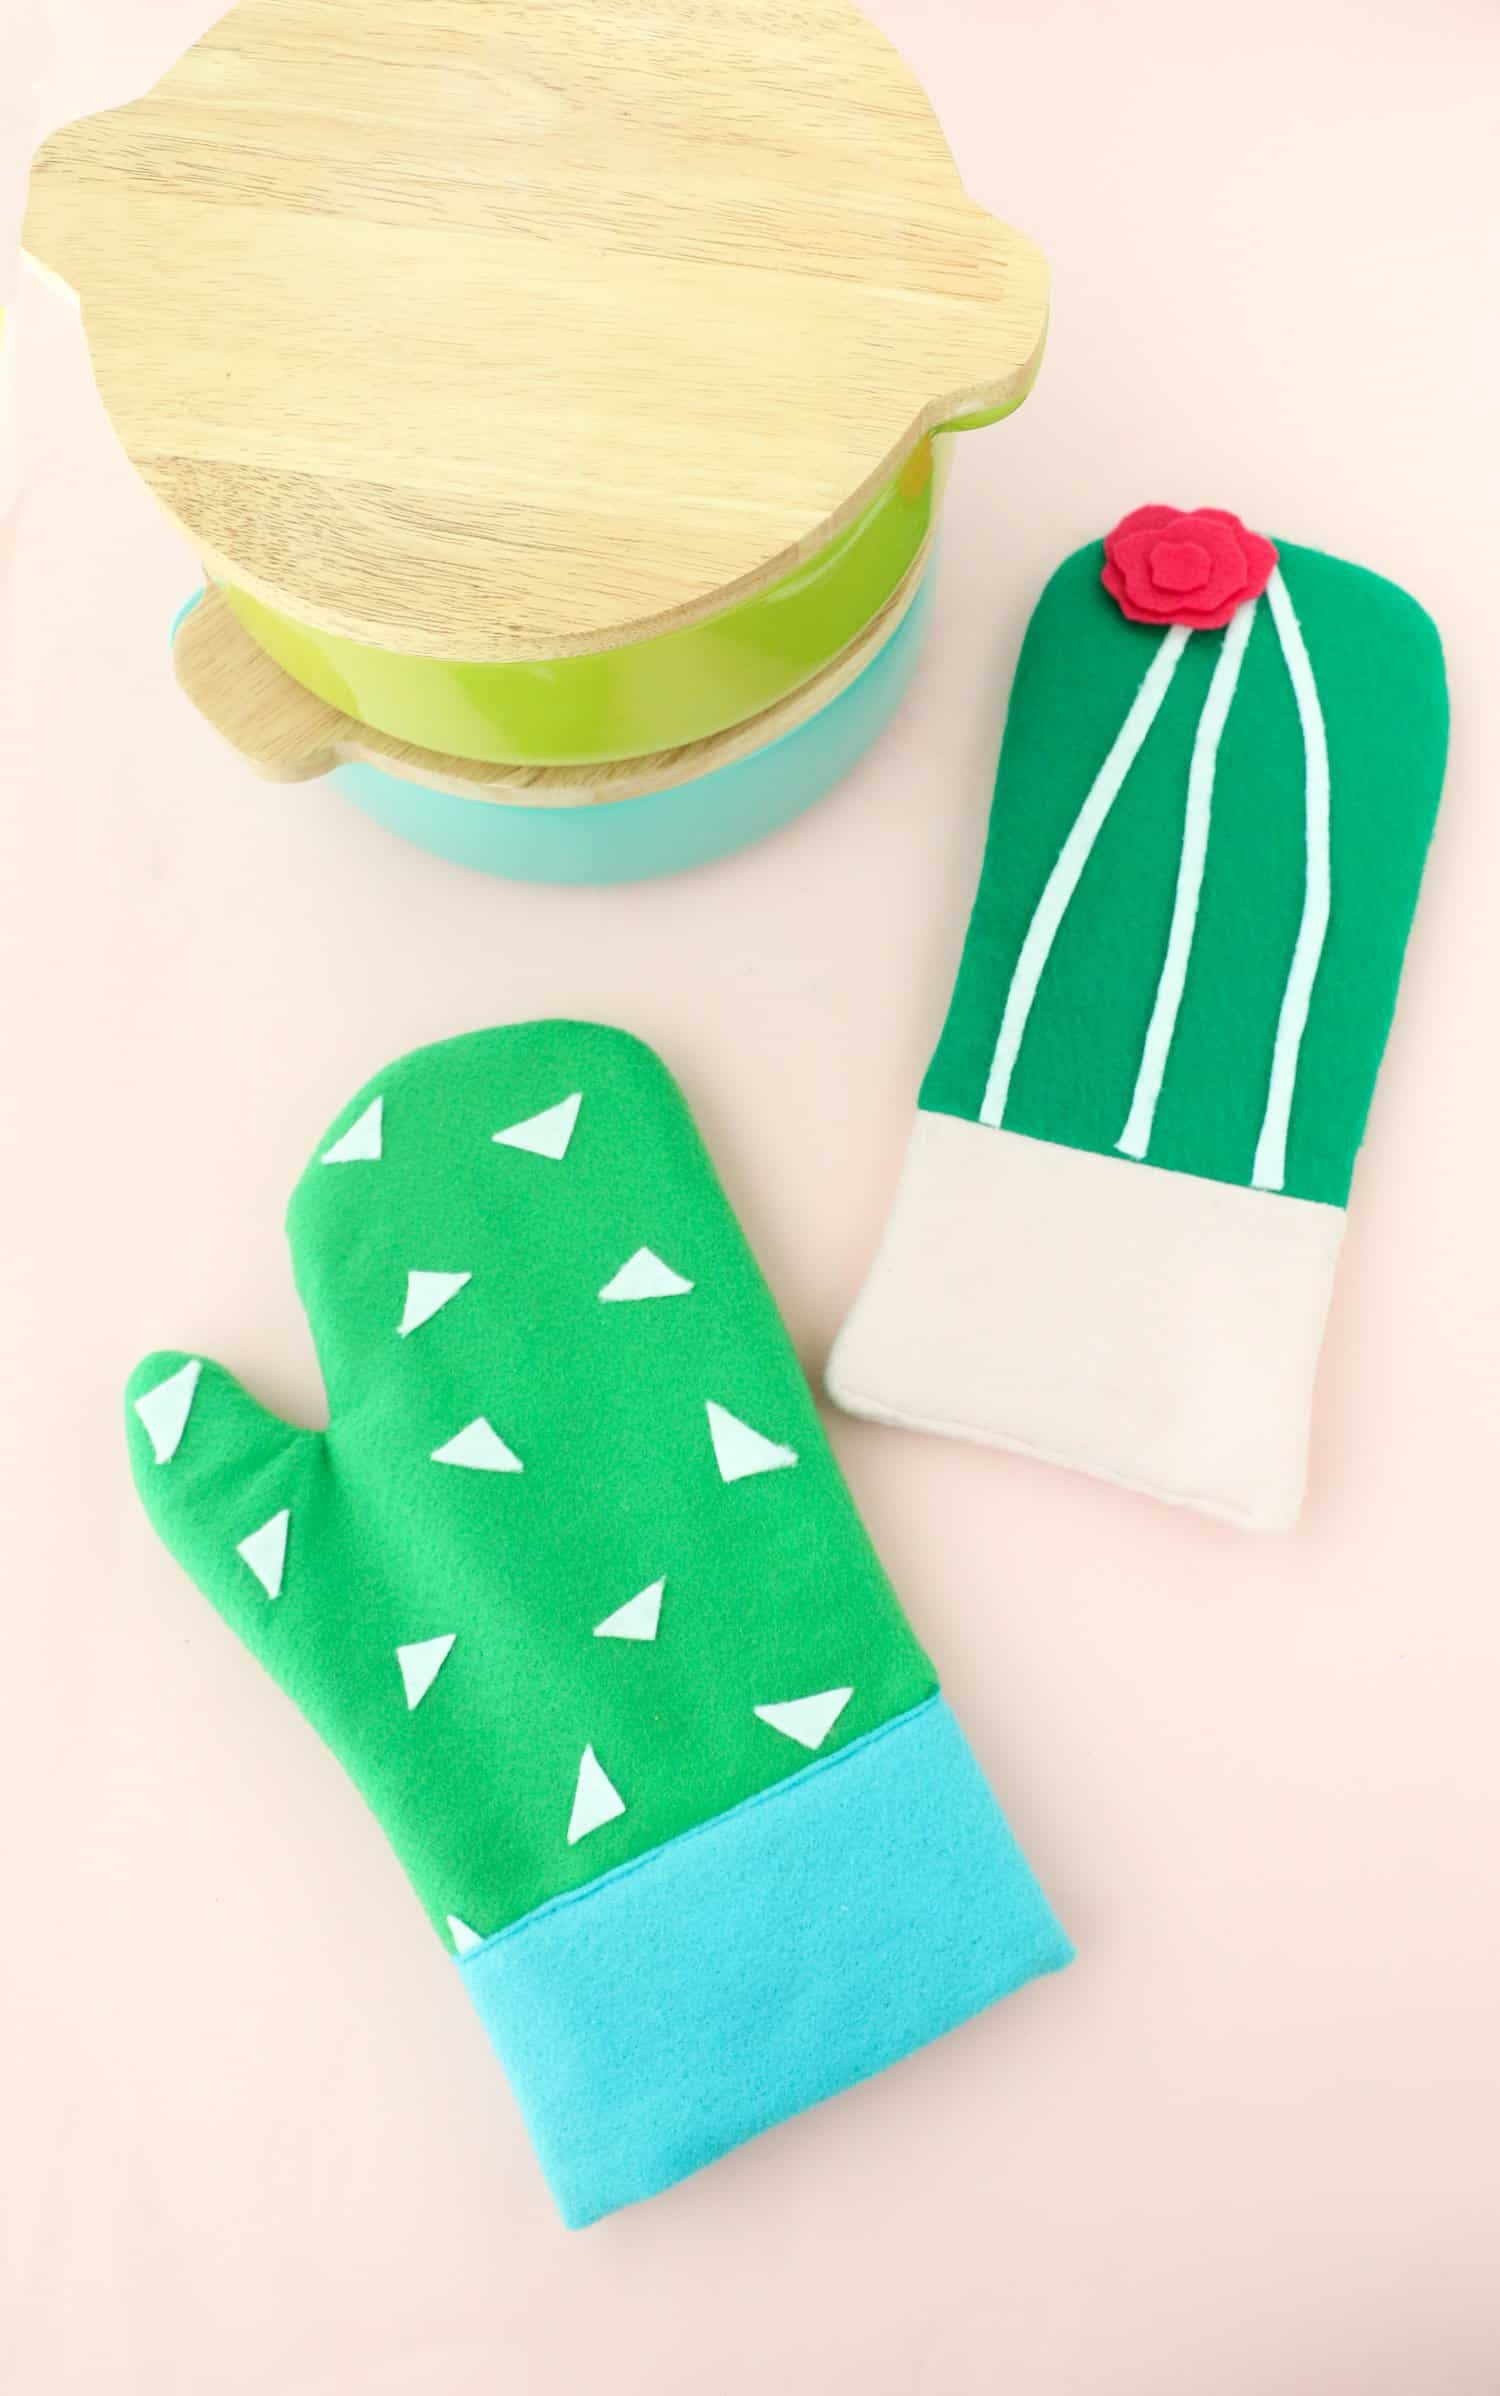 DIY-Cactus-Oven-Mitts-Click-Through-for-Tutorial-1-14